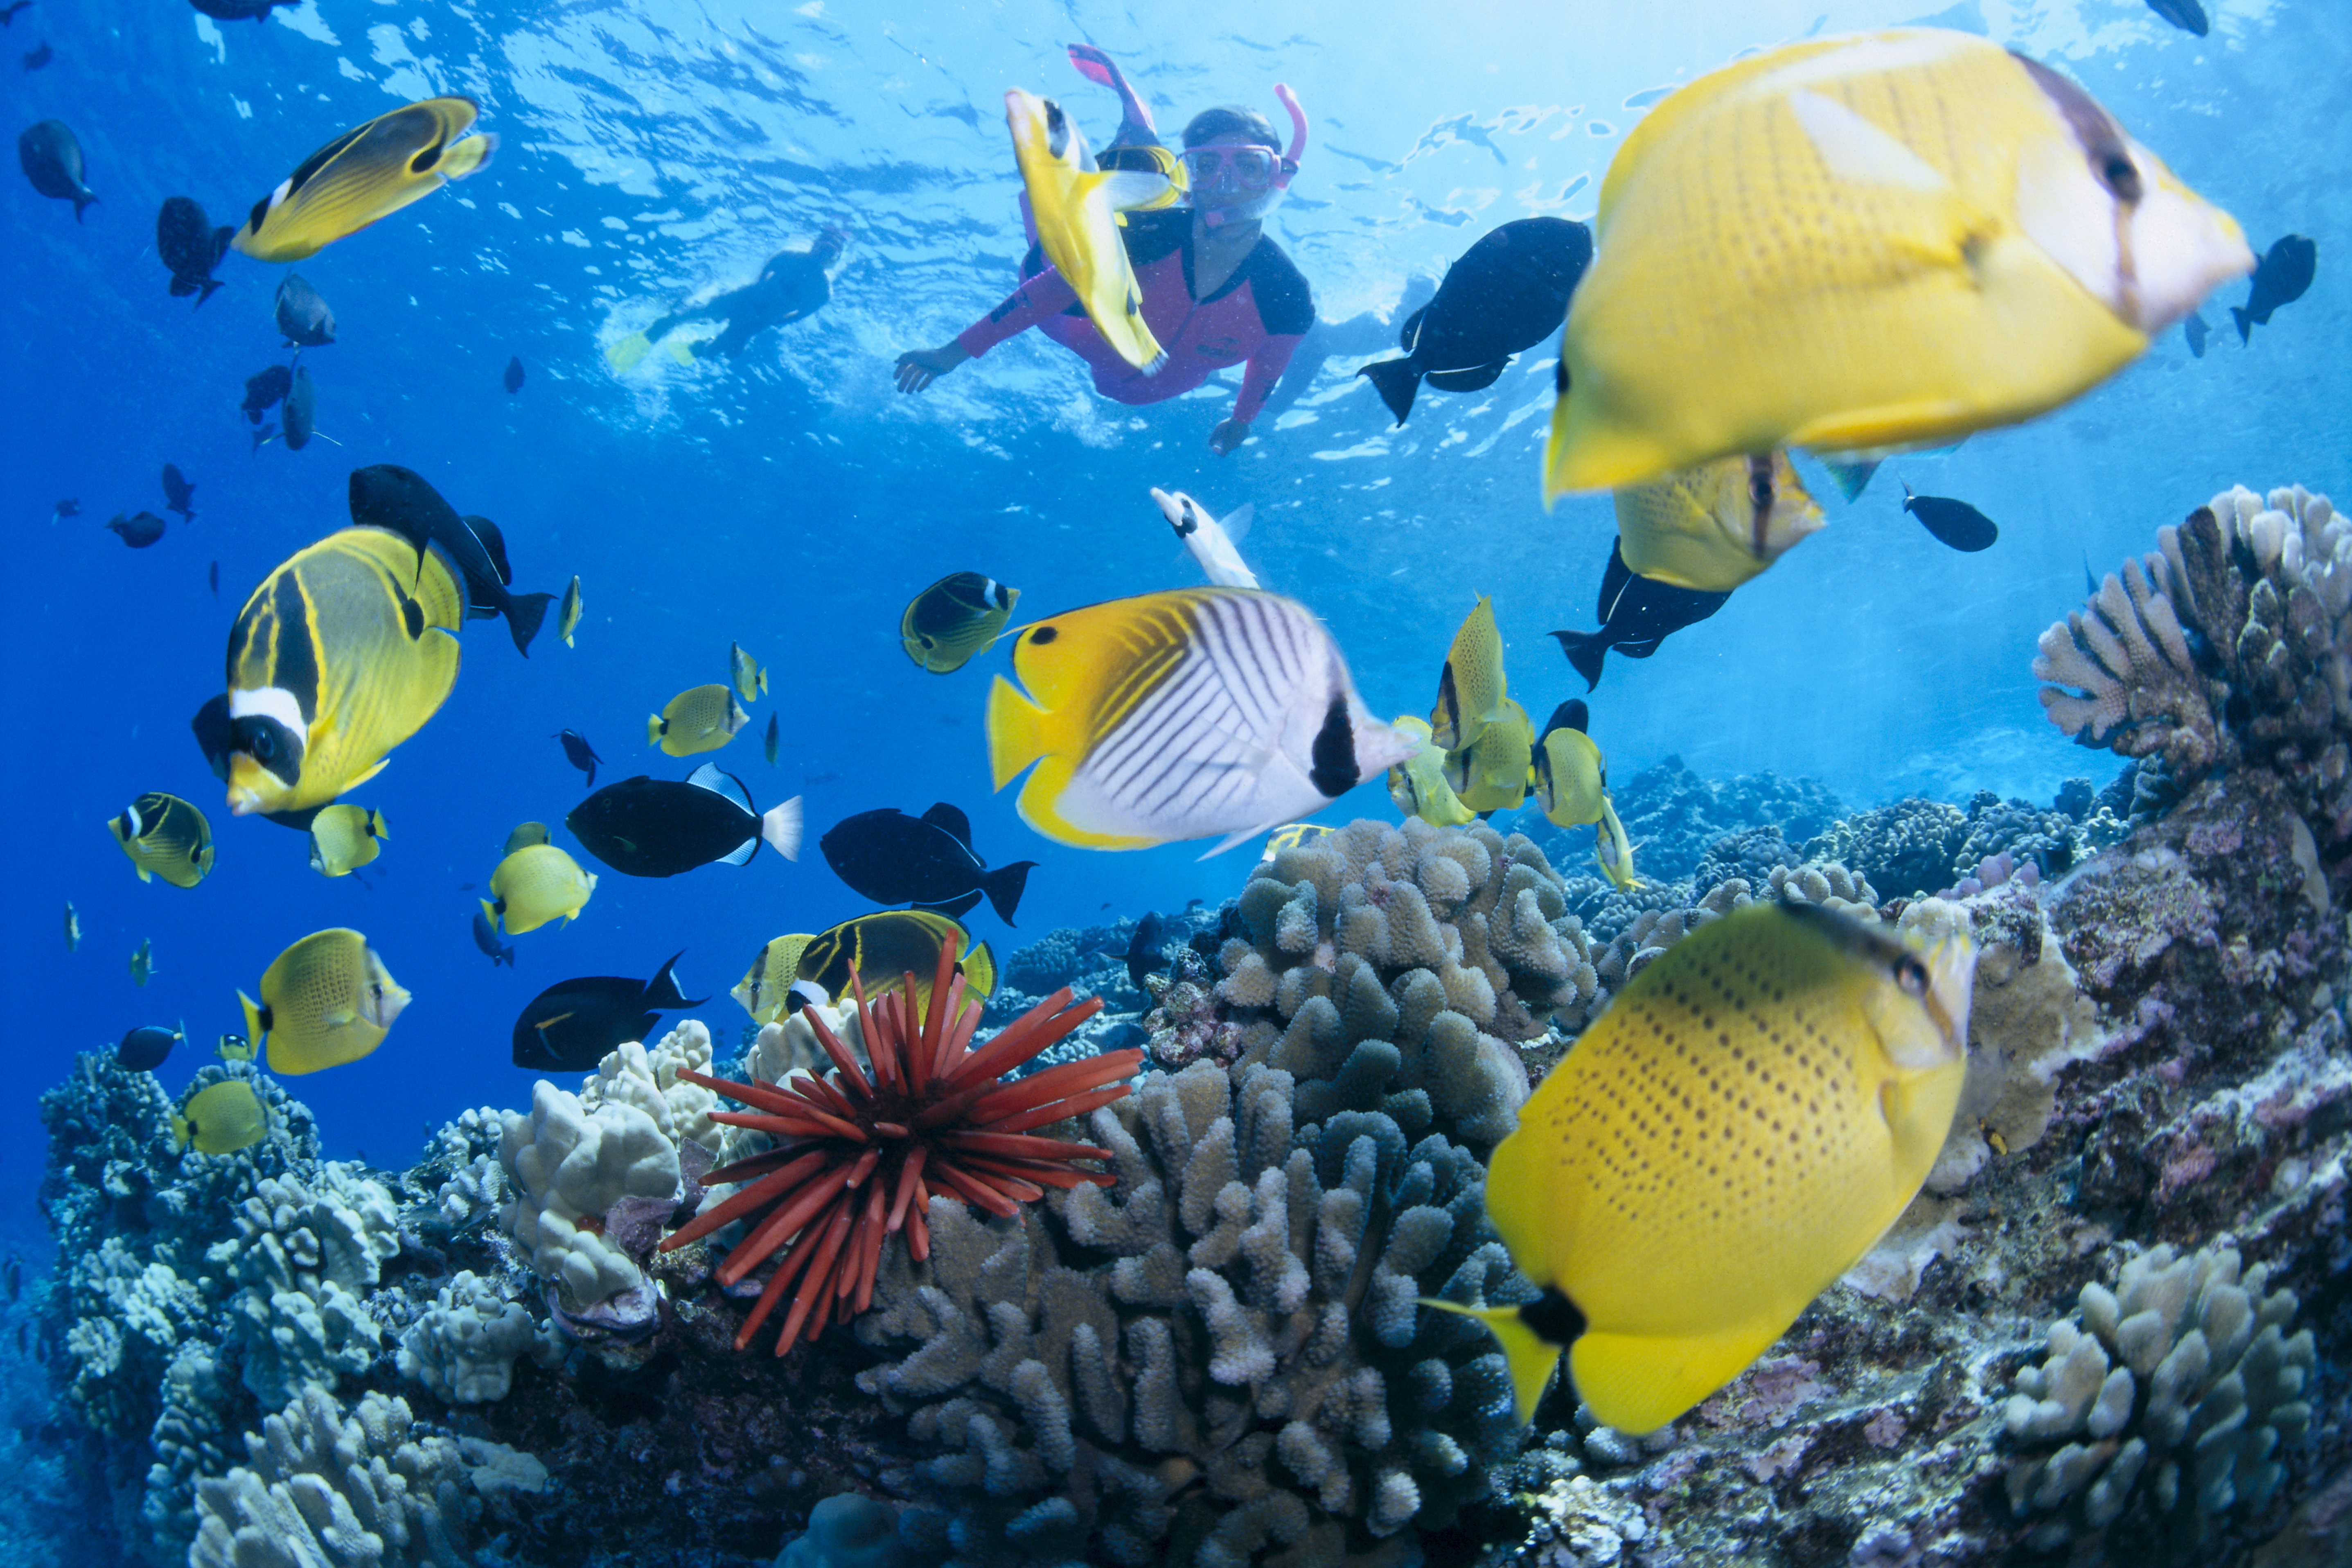 Hawaii, Maui, Molokini, Woman In Pink Snorkels With Tropical Fish, Coral Reef Urchin